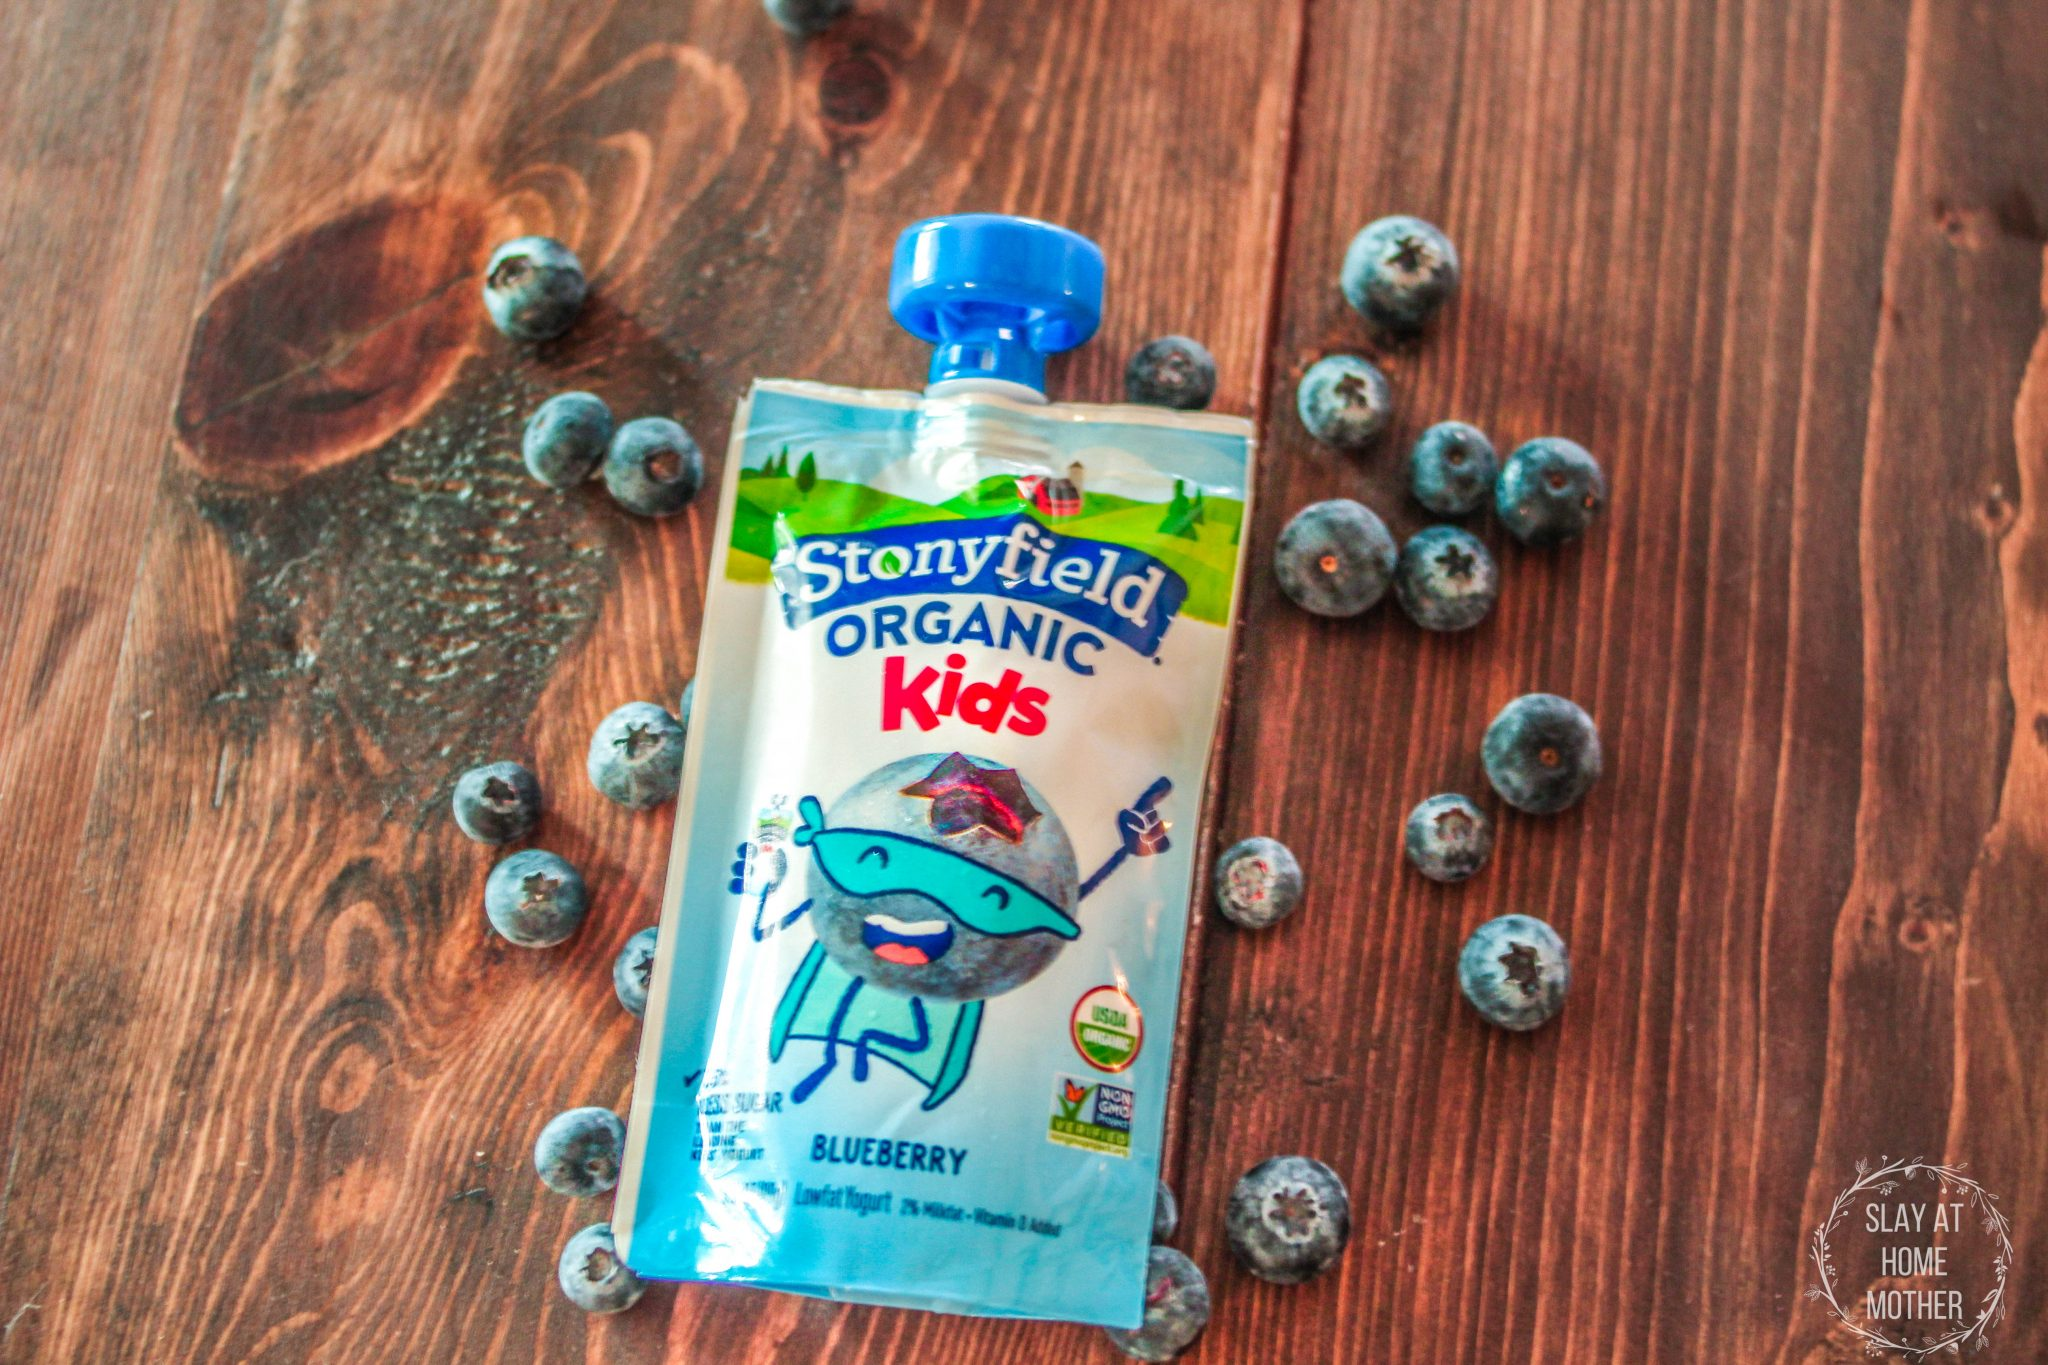 5 Things I Look For In The Perfect Kids Snack #stonyfield #stonyfieldkids #slayathomemother - SlayAtHomeMother.com